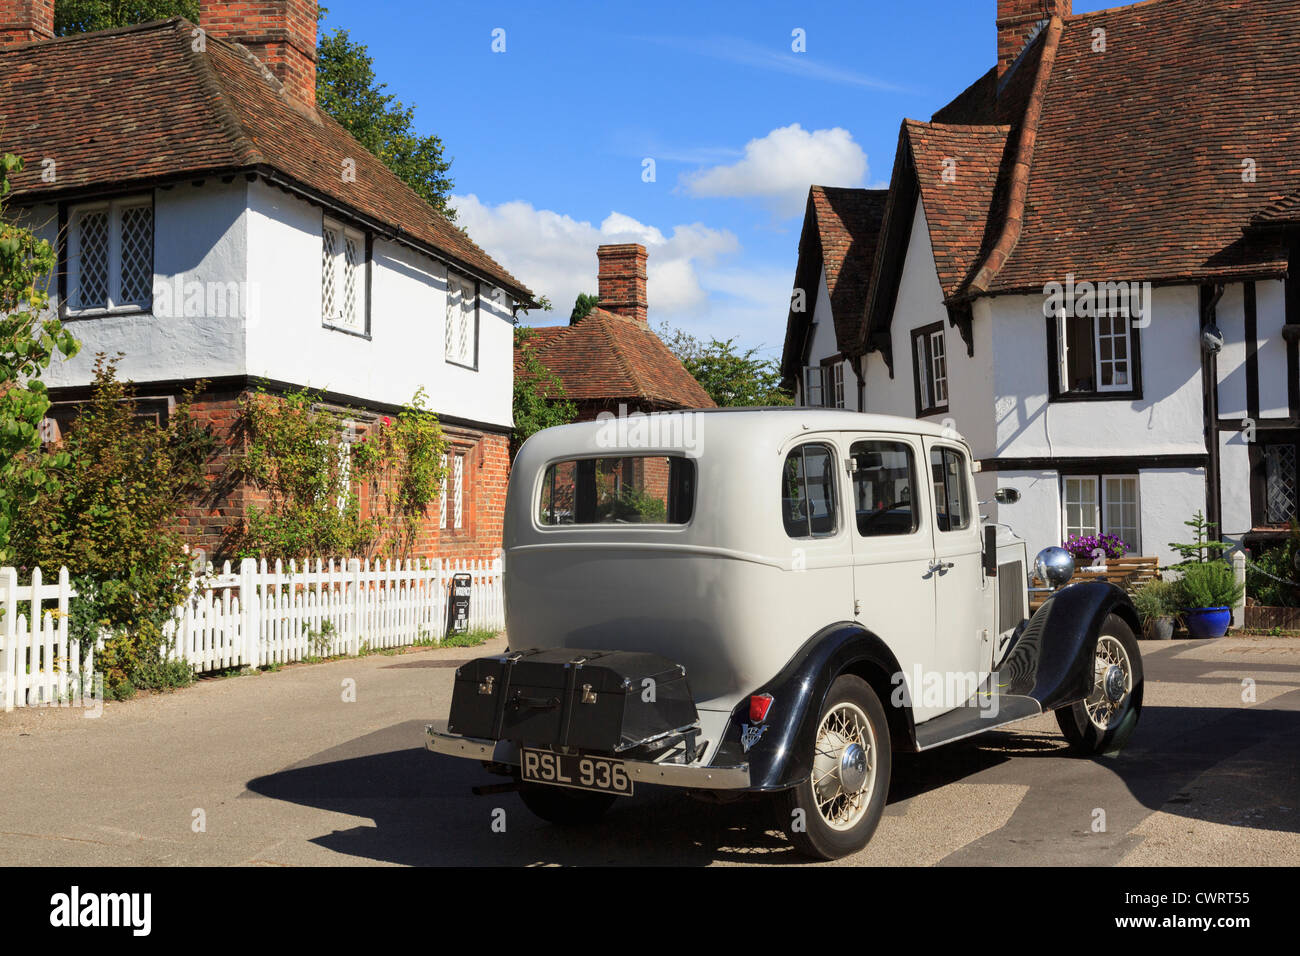 Vintage Daimler saloon car in historic and picturesque Kentish village square in Chilham, Kent, England, UK, Britain - Stock Image